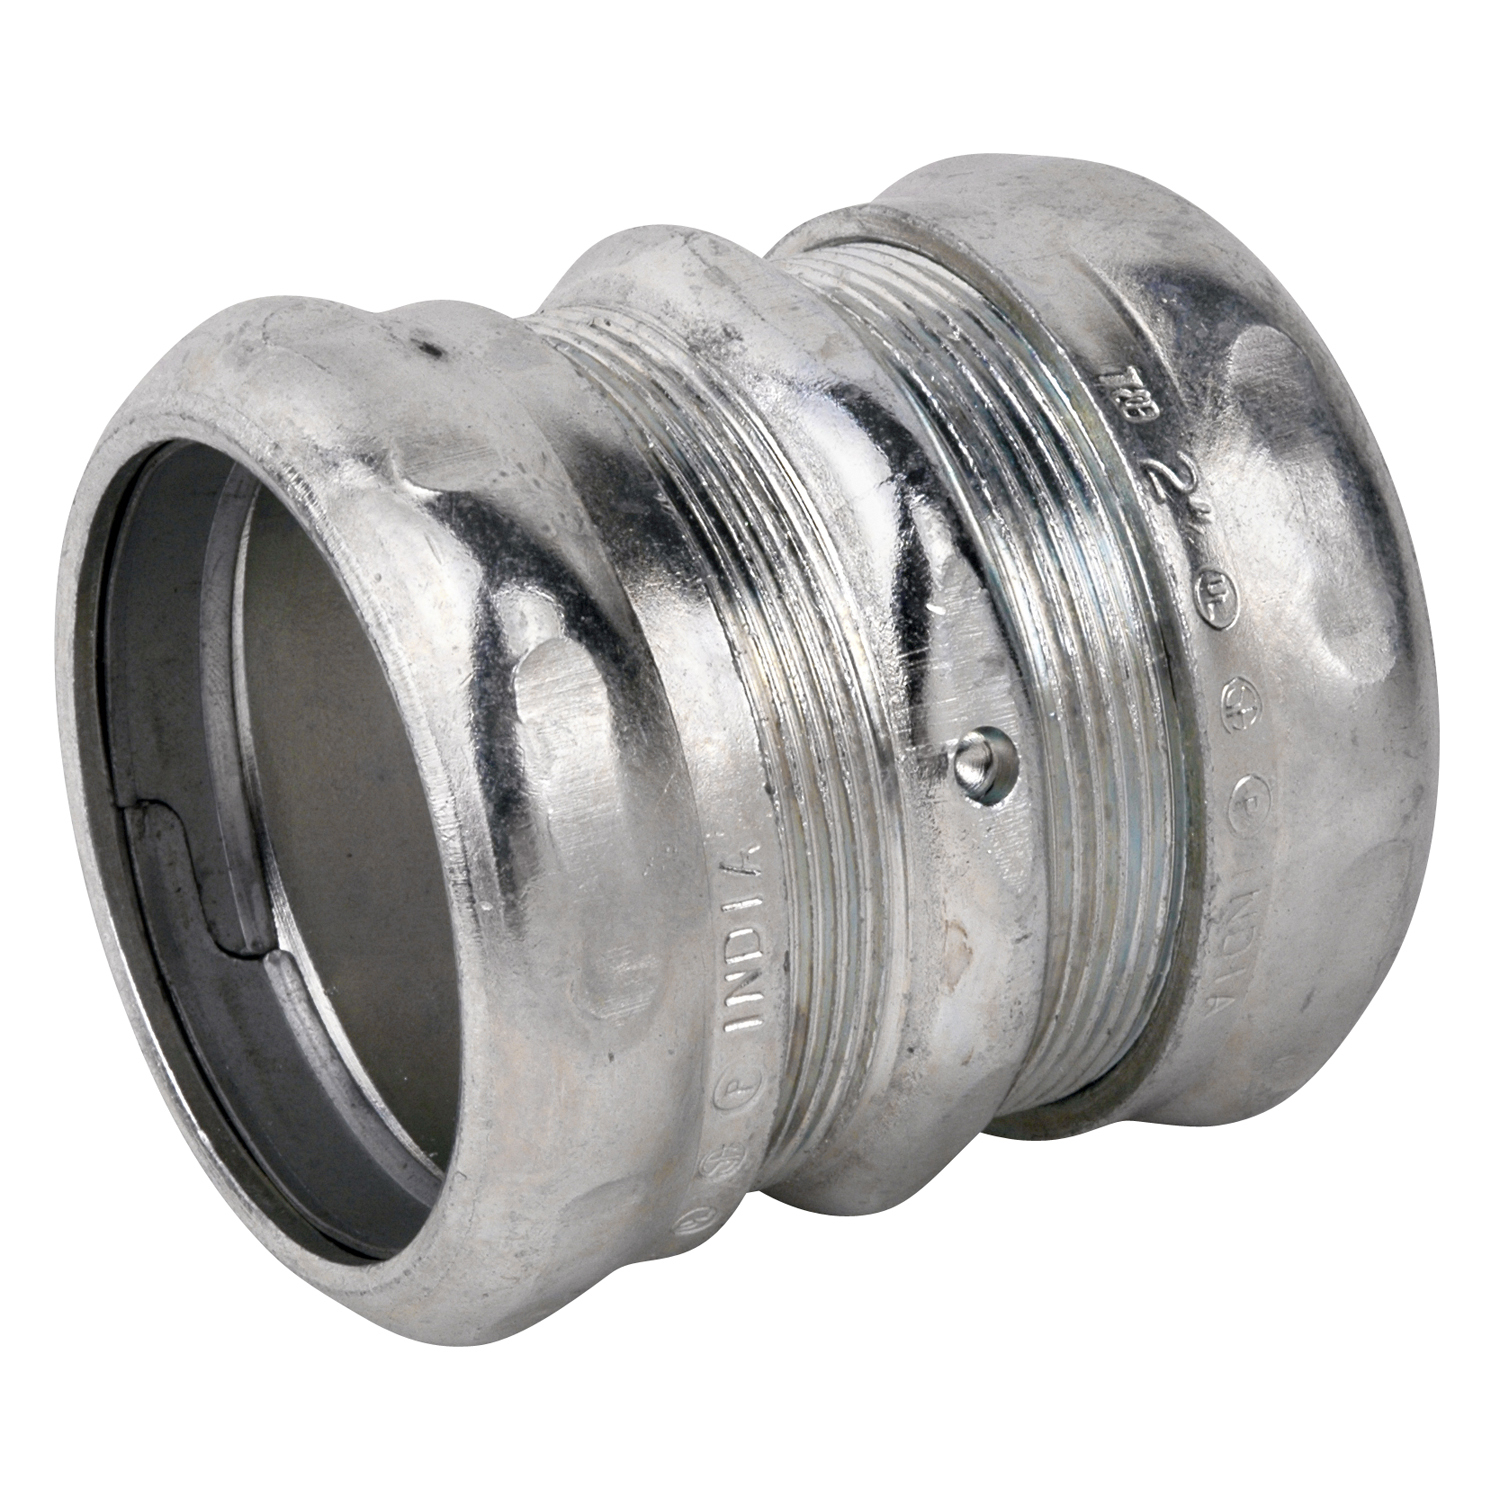 Steel City,TK116A,Steel City® TK116A Compression Thinwall Coupling, 2 in, For Use With EMT Conduit, Steel, Zinc Plated